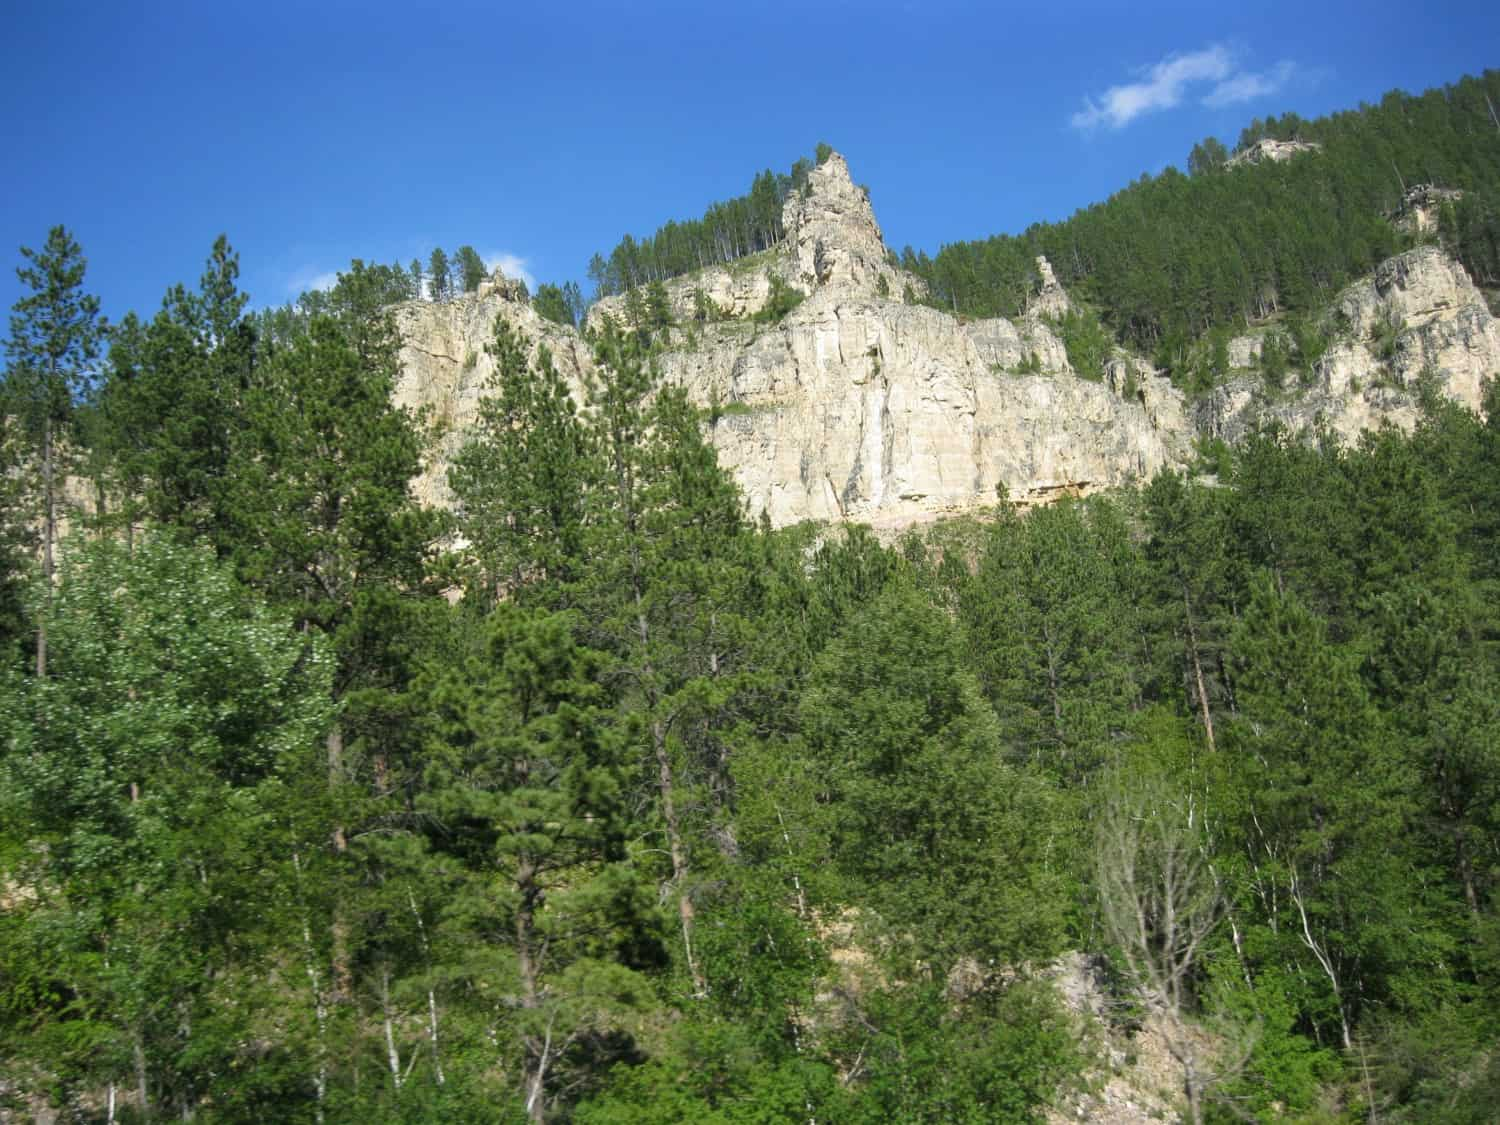 The Black Hills / Sturgis, Deadwood, Spearfish & Devils Tower